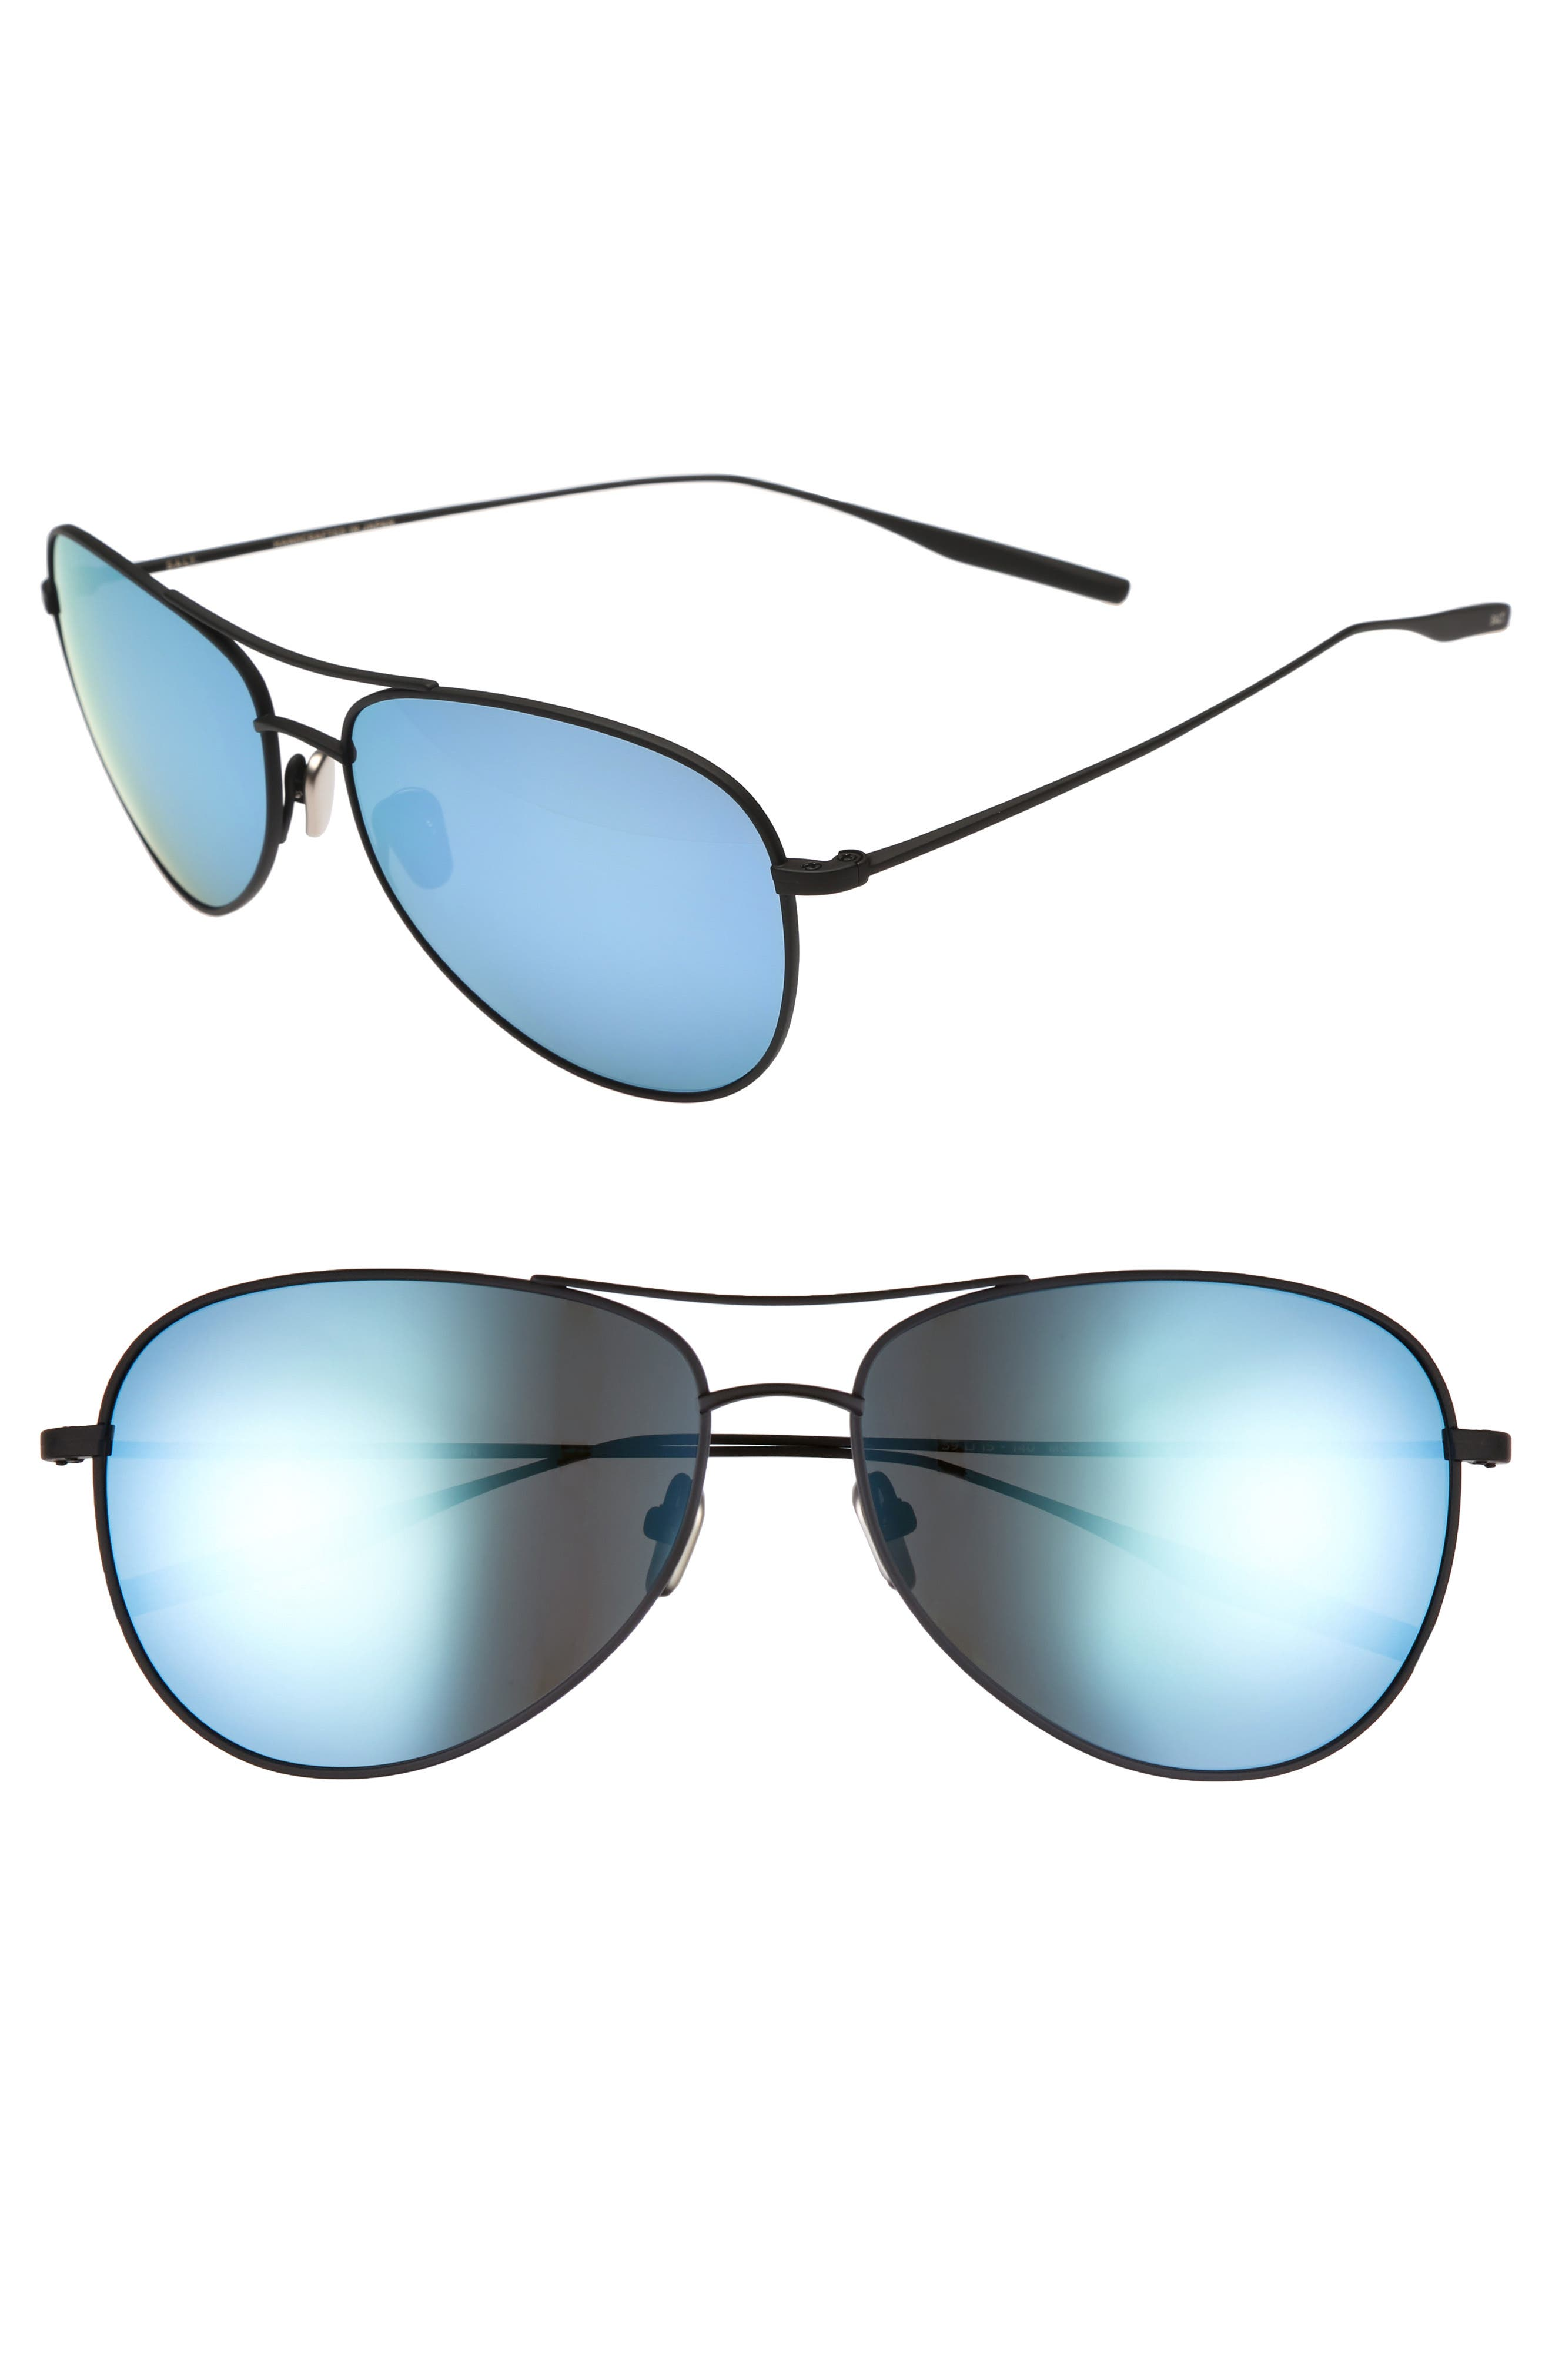 McKean 59mm Aviator Sunglasses,                             Main thumbnail 1, color,                             BLACK SAND / MIRROR BLUE